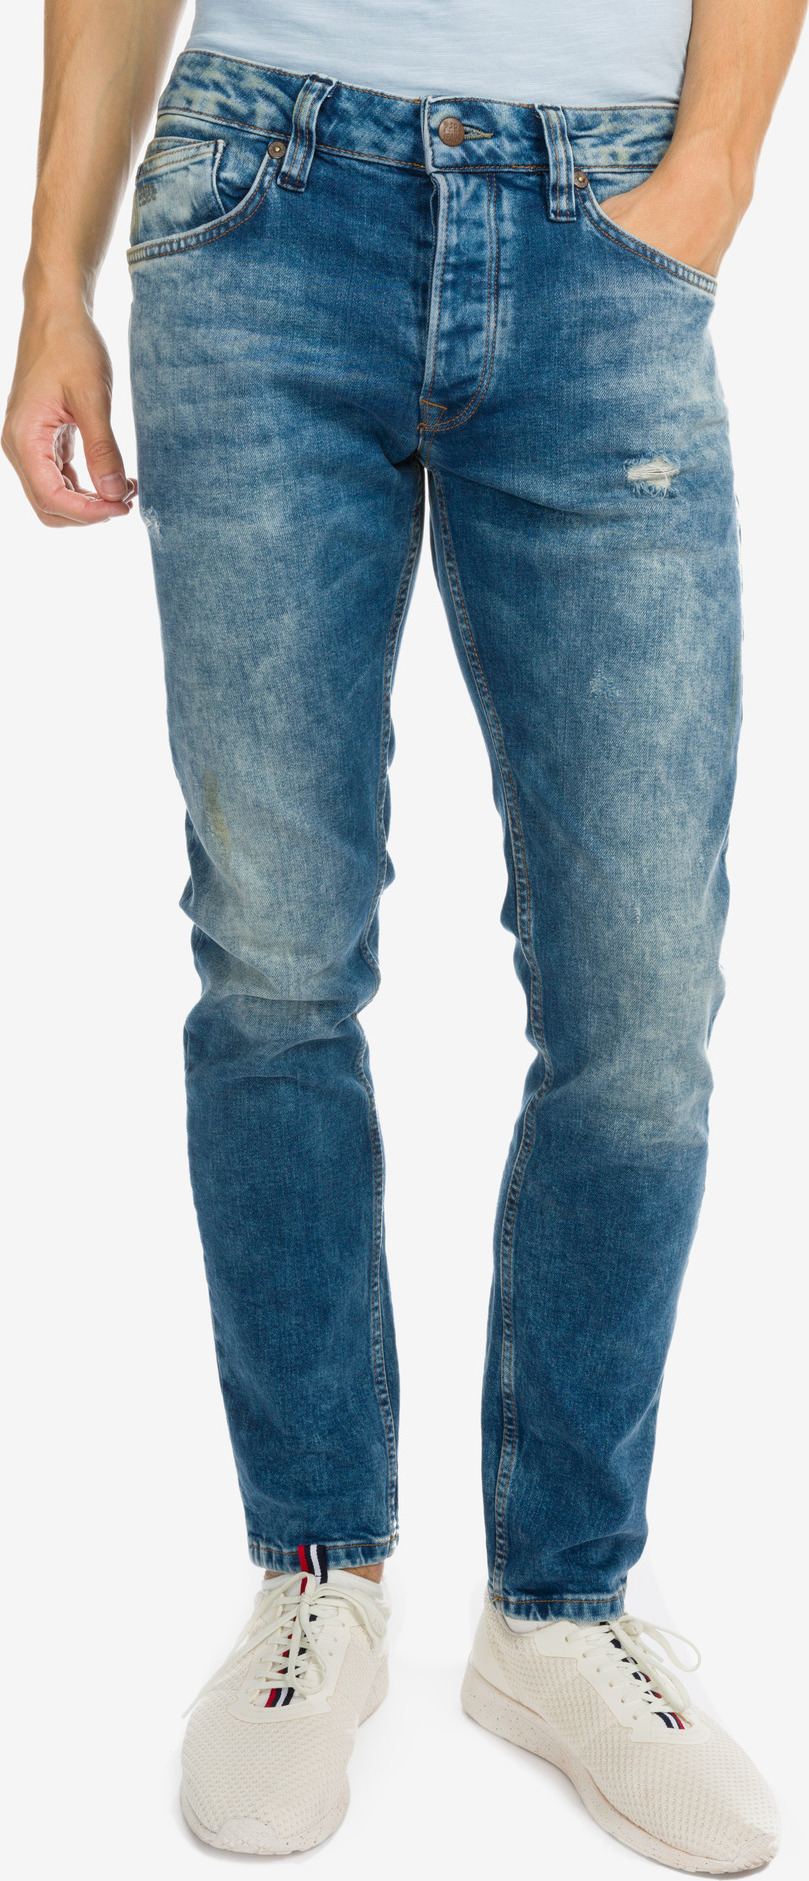 Zinc Dusted Jeans Pepe Jeans